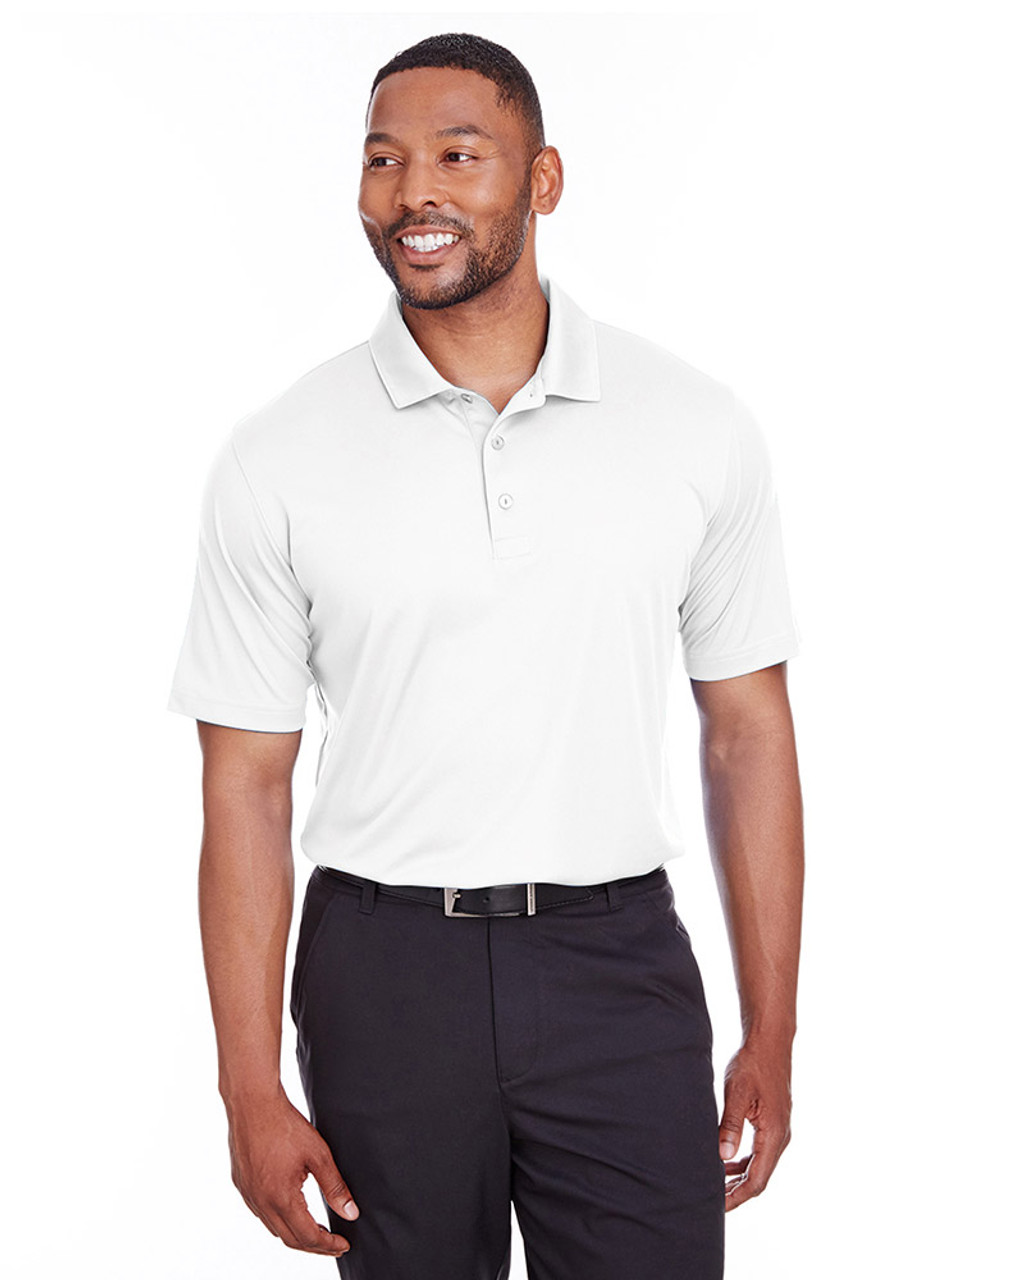 Bright White - 596799 Puma Golf Men's Icon Golf Polo | Blankclothing.ca